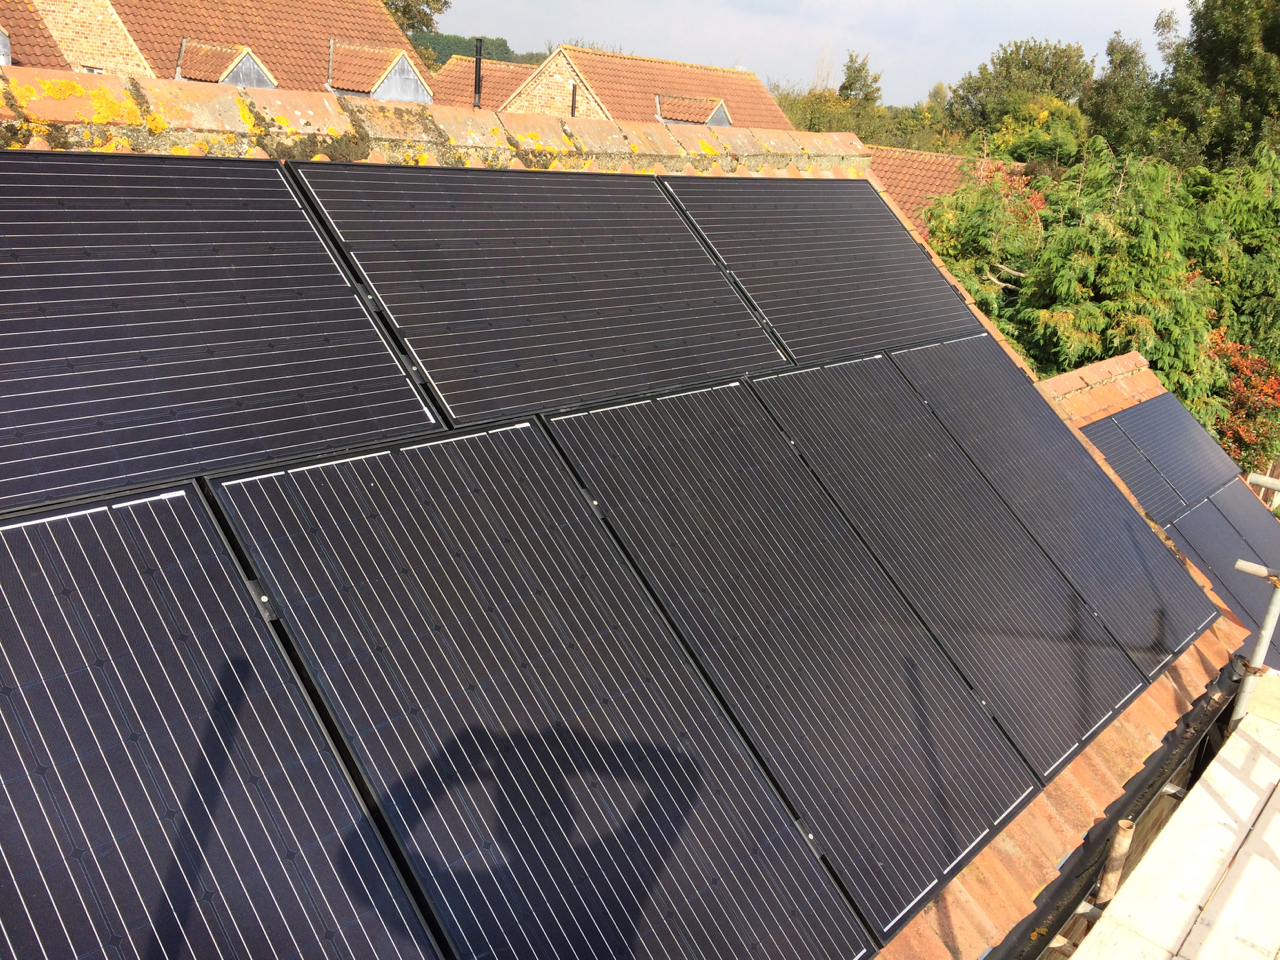 https://www.bluedotroofing.uk/wp-content/uploads/2018/01/Solar-panels-37.jpg